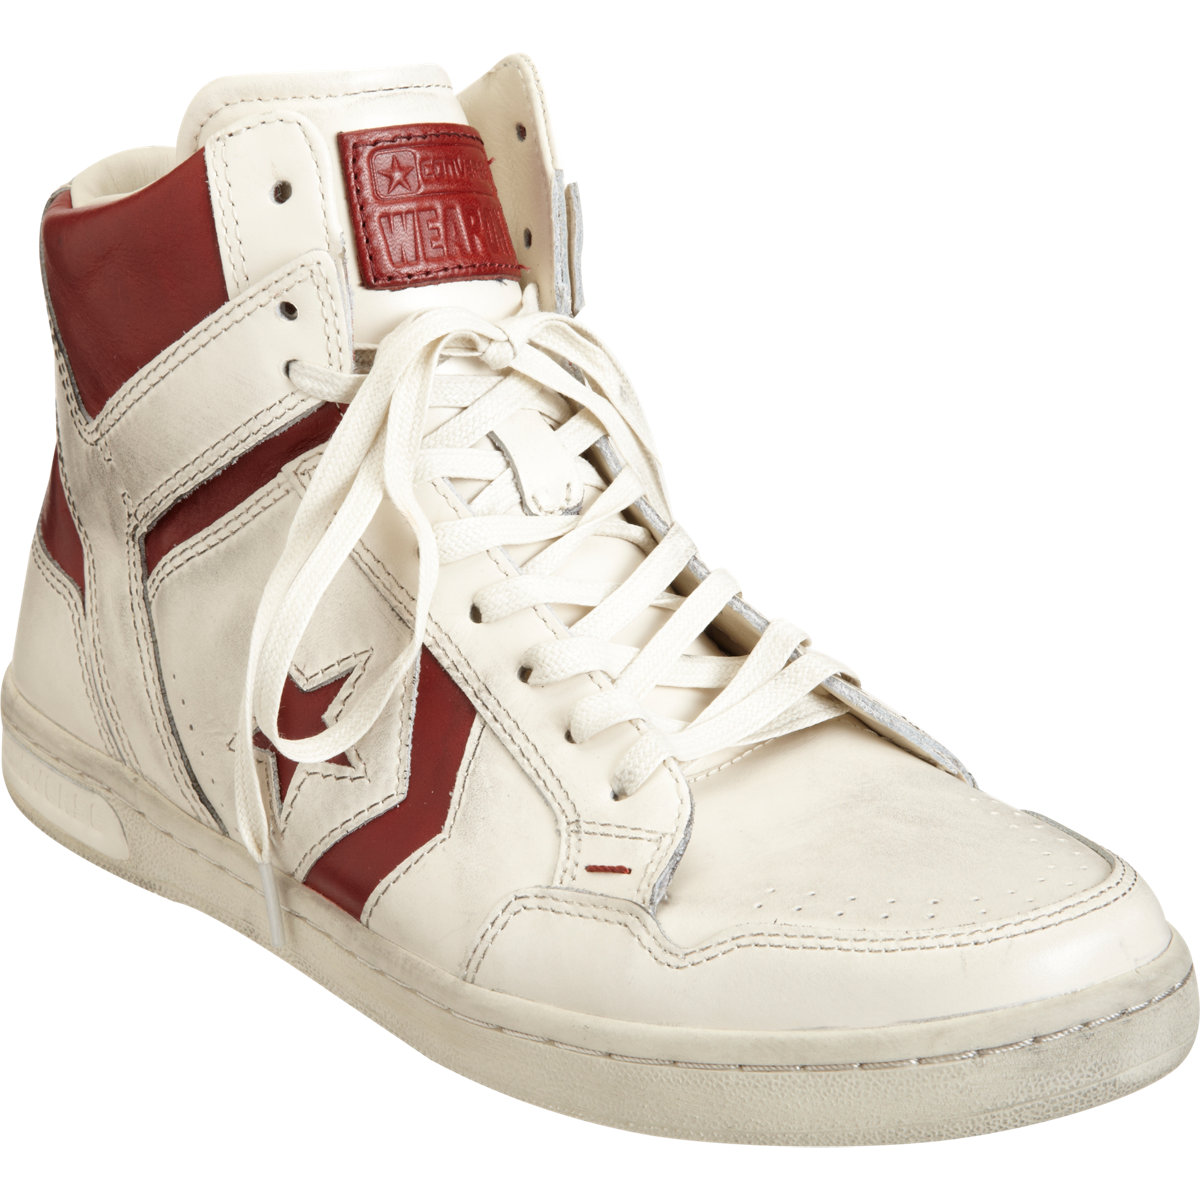 Converse Sneakers For Men